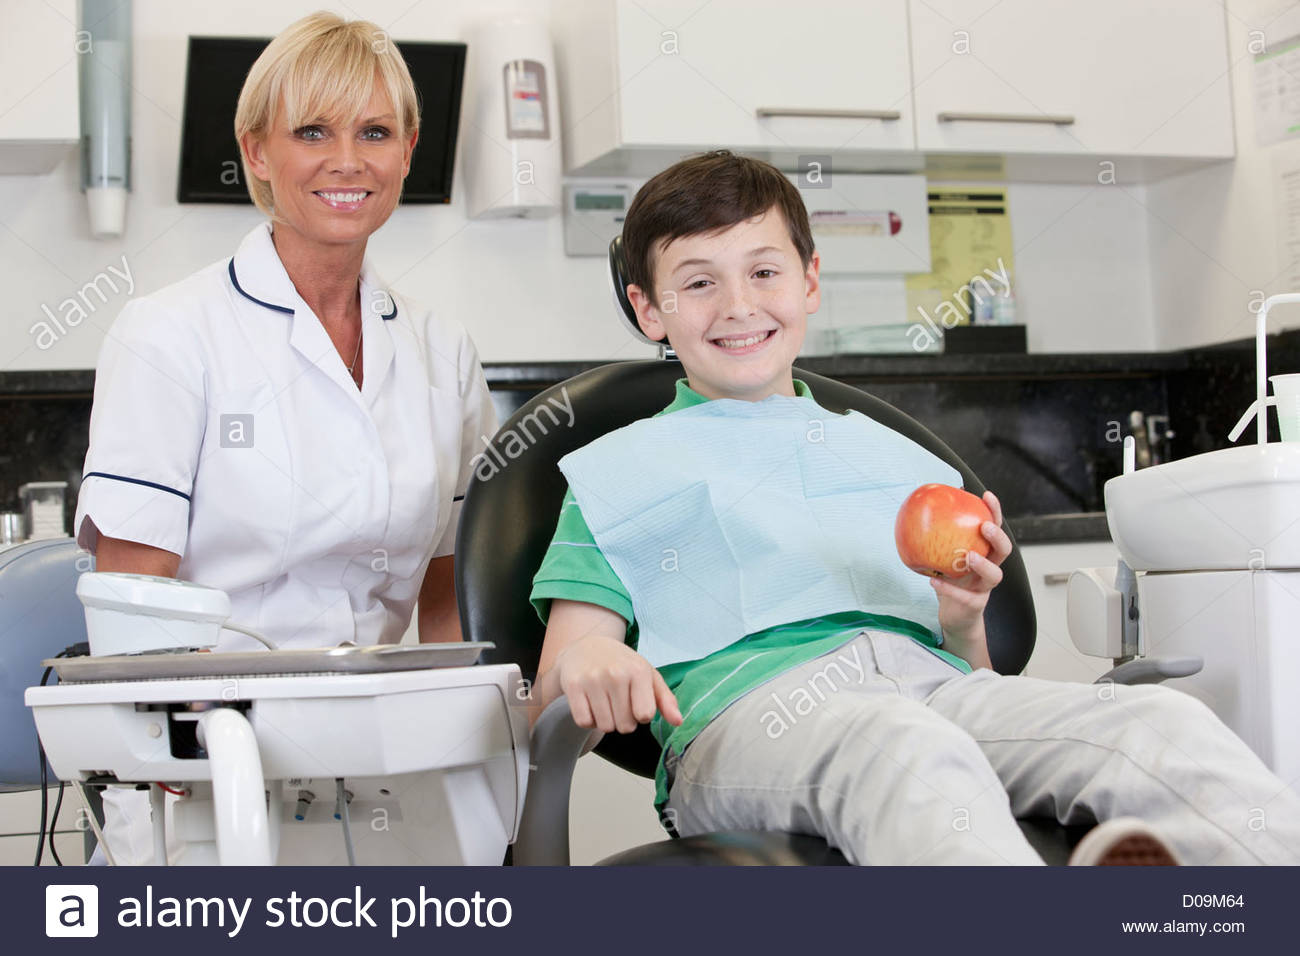 A young boy at the dentist holding an apple - Stock Image